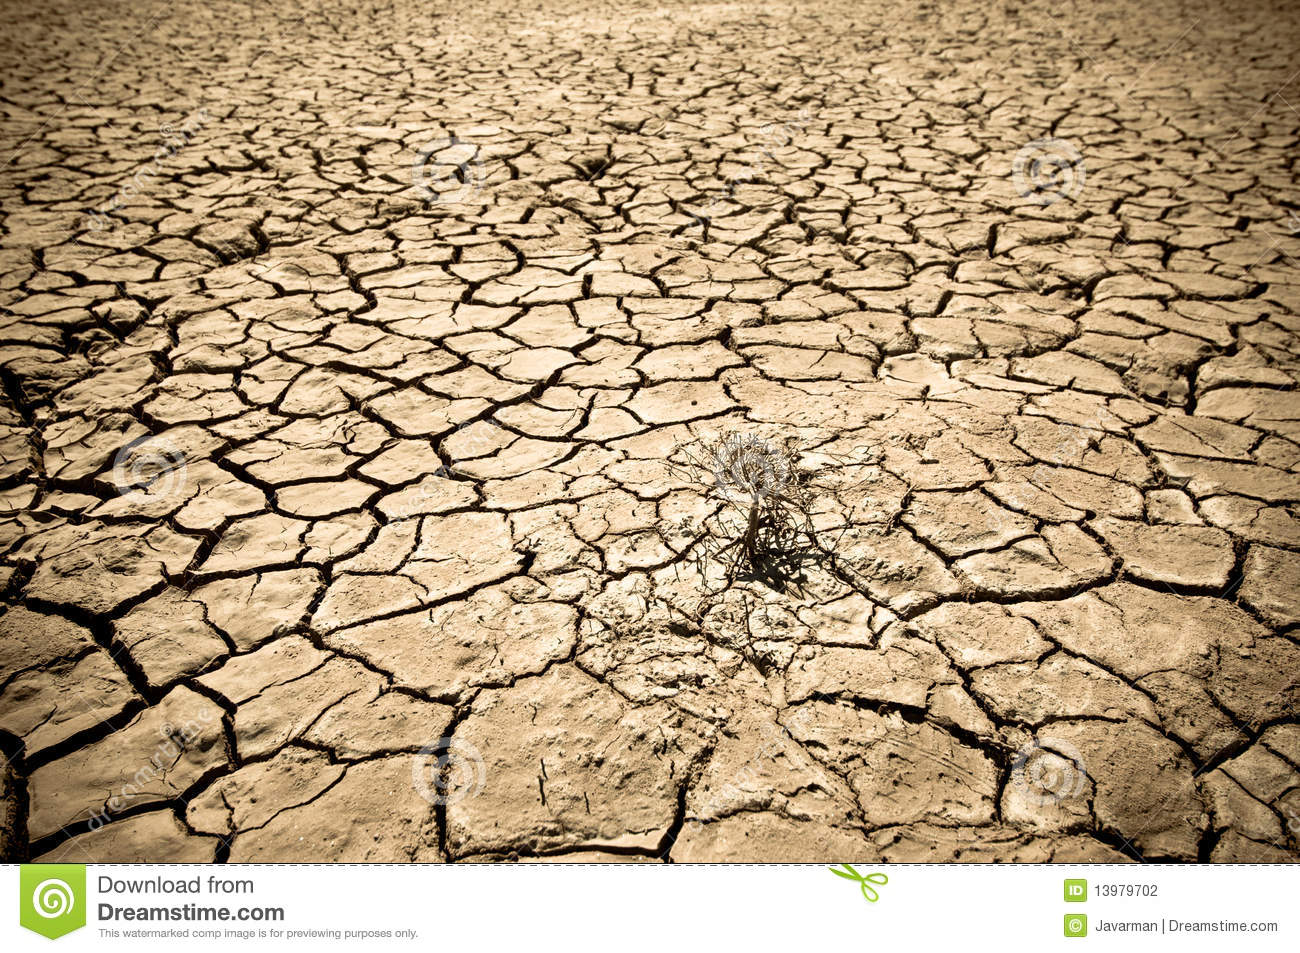 Cracked Soil Of Desert Stock Photography - Image: 13979702